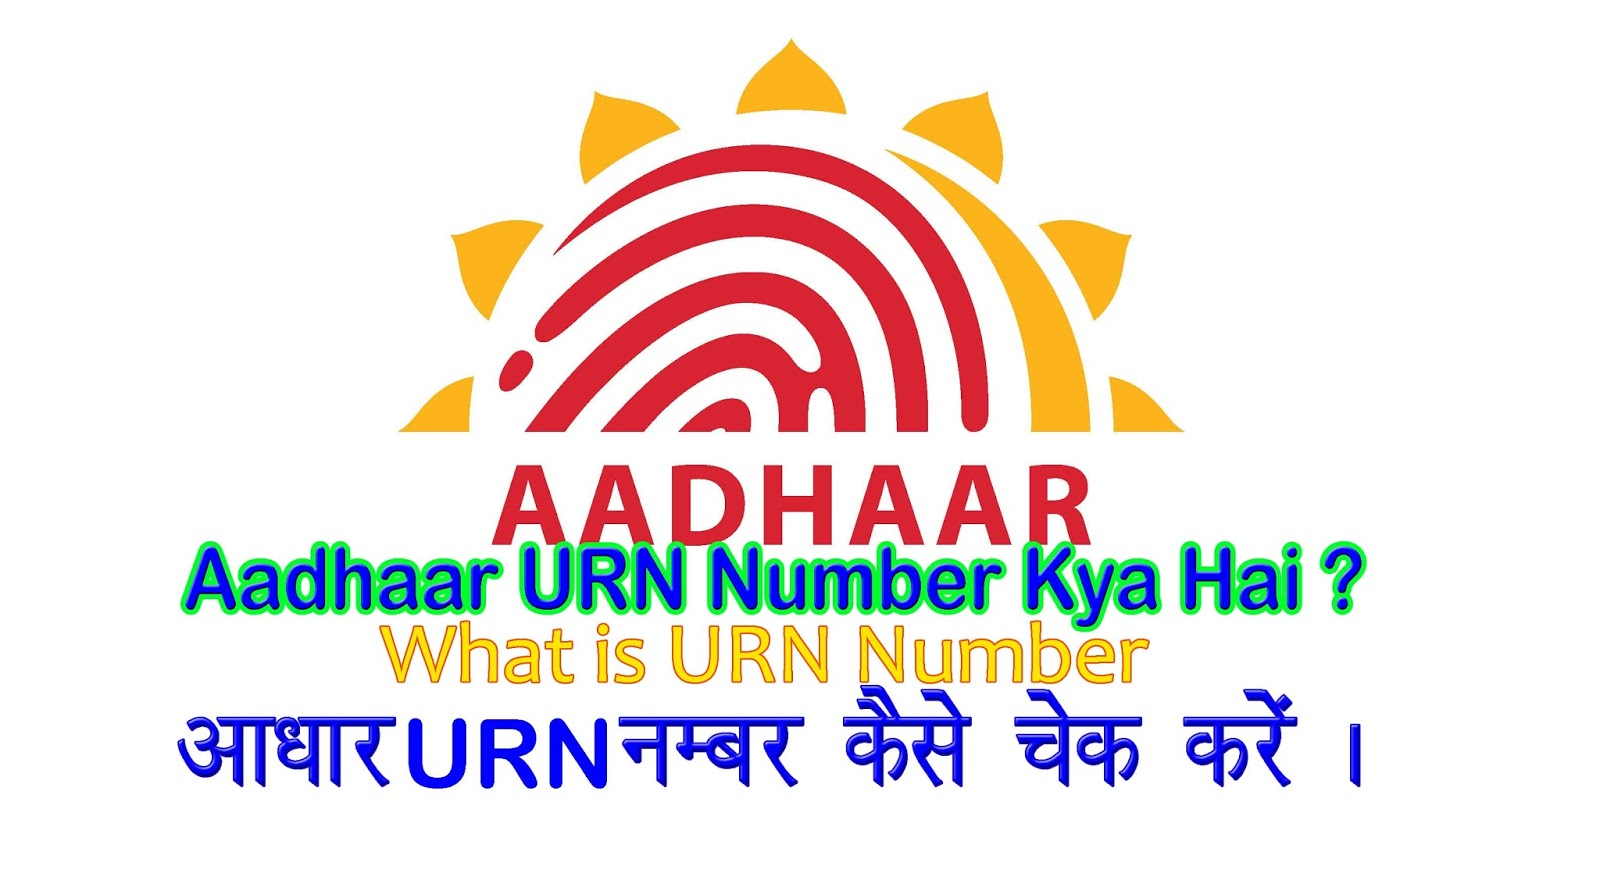 What is URN in Aadhaar?